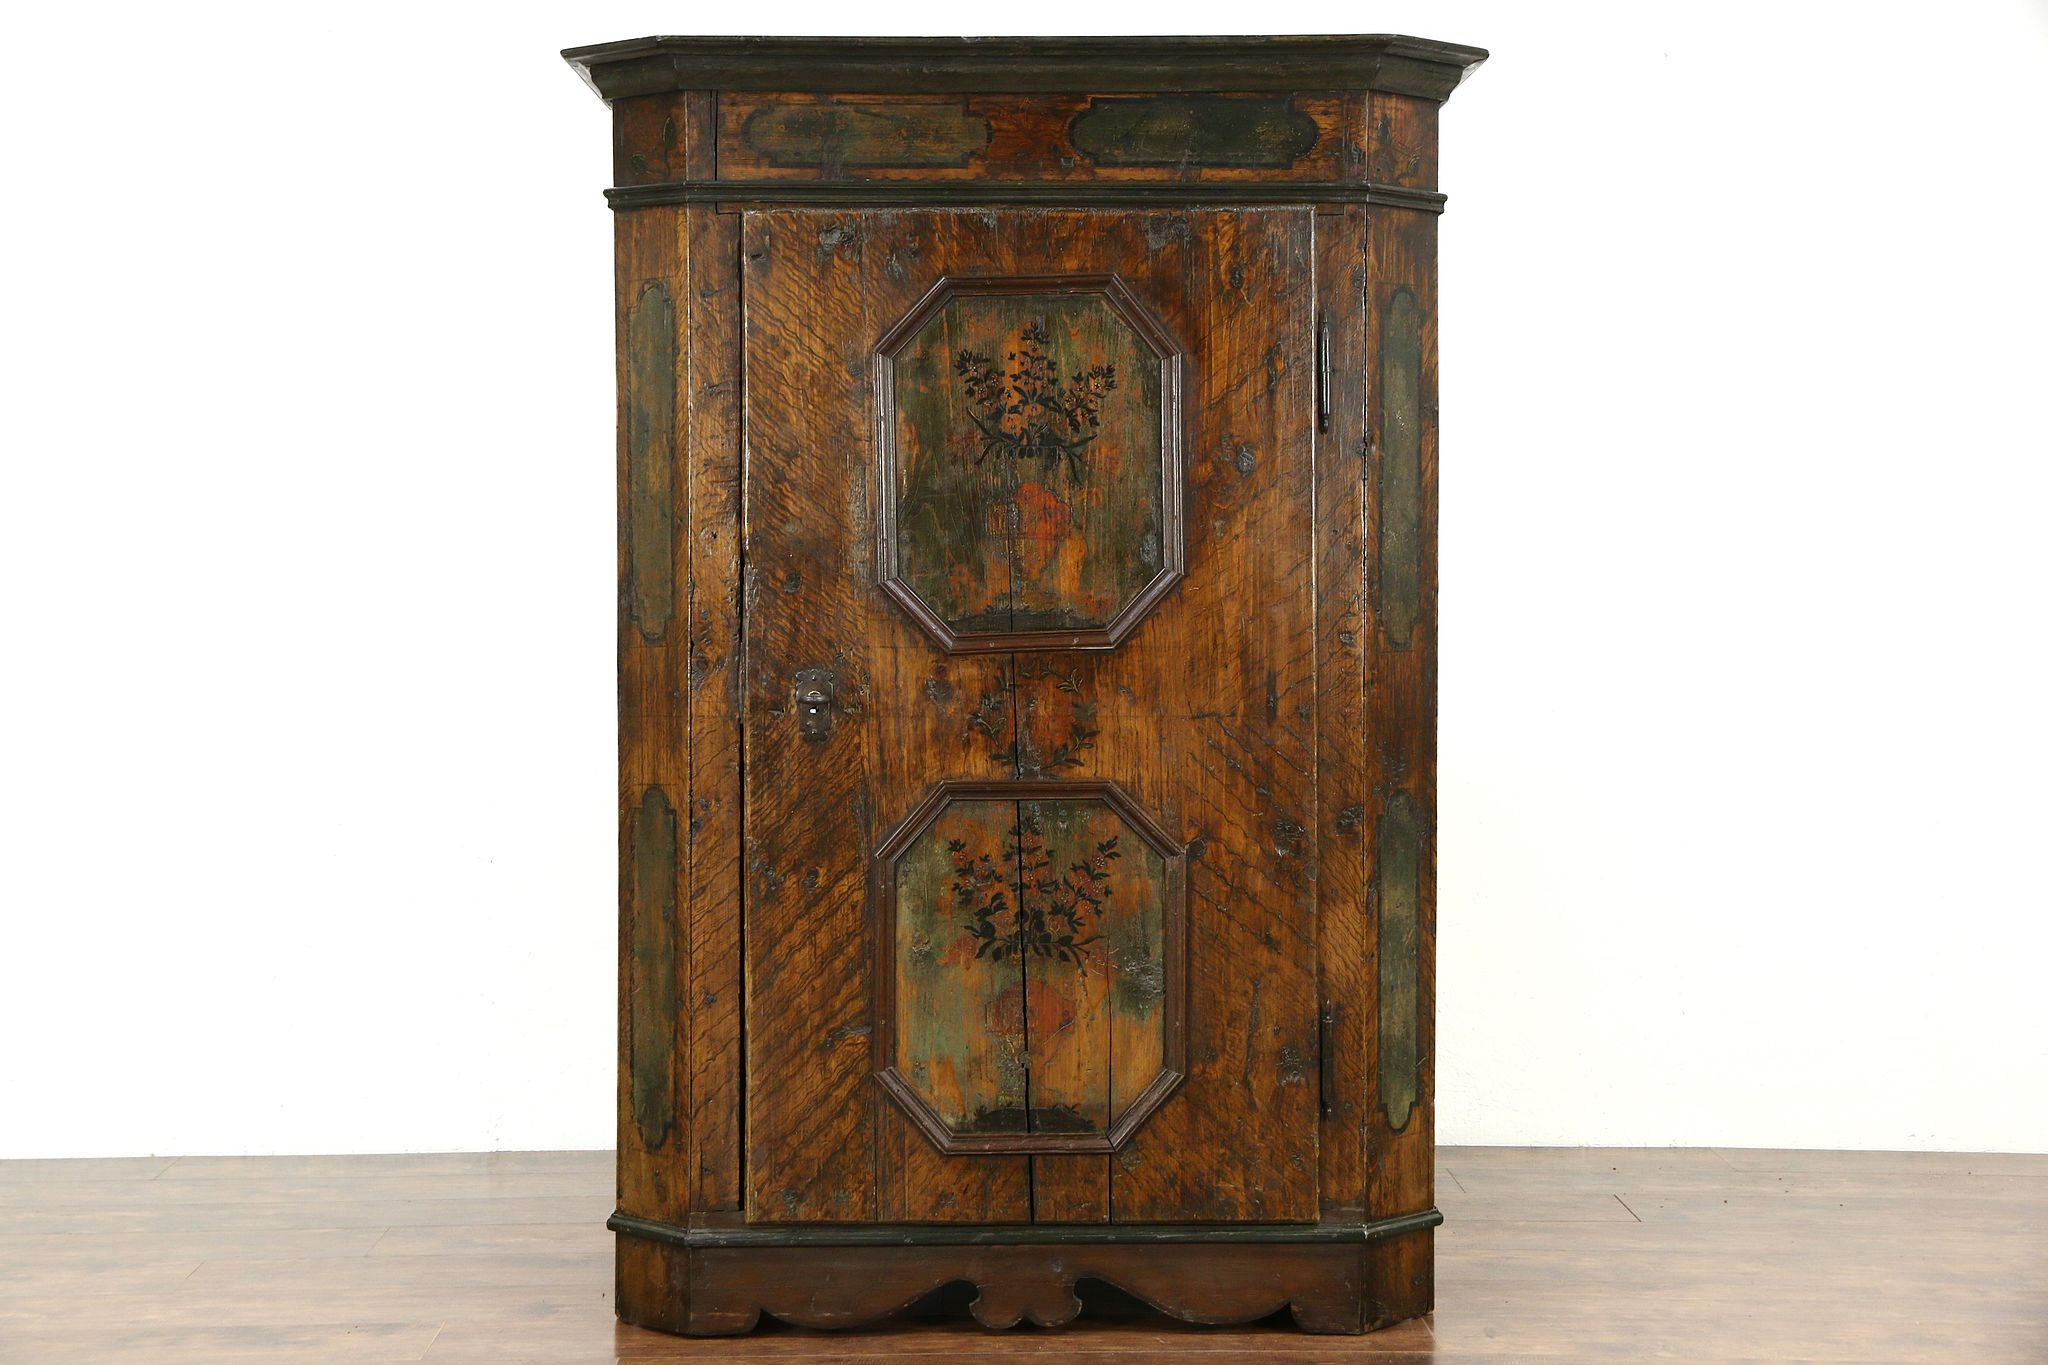 Schrank Schrank German Hand Painted 1700 S Antique Folk Art Dowry Armoire Or Cabinet